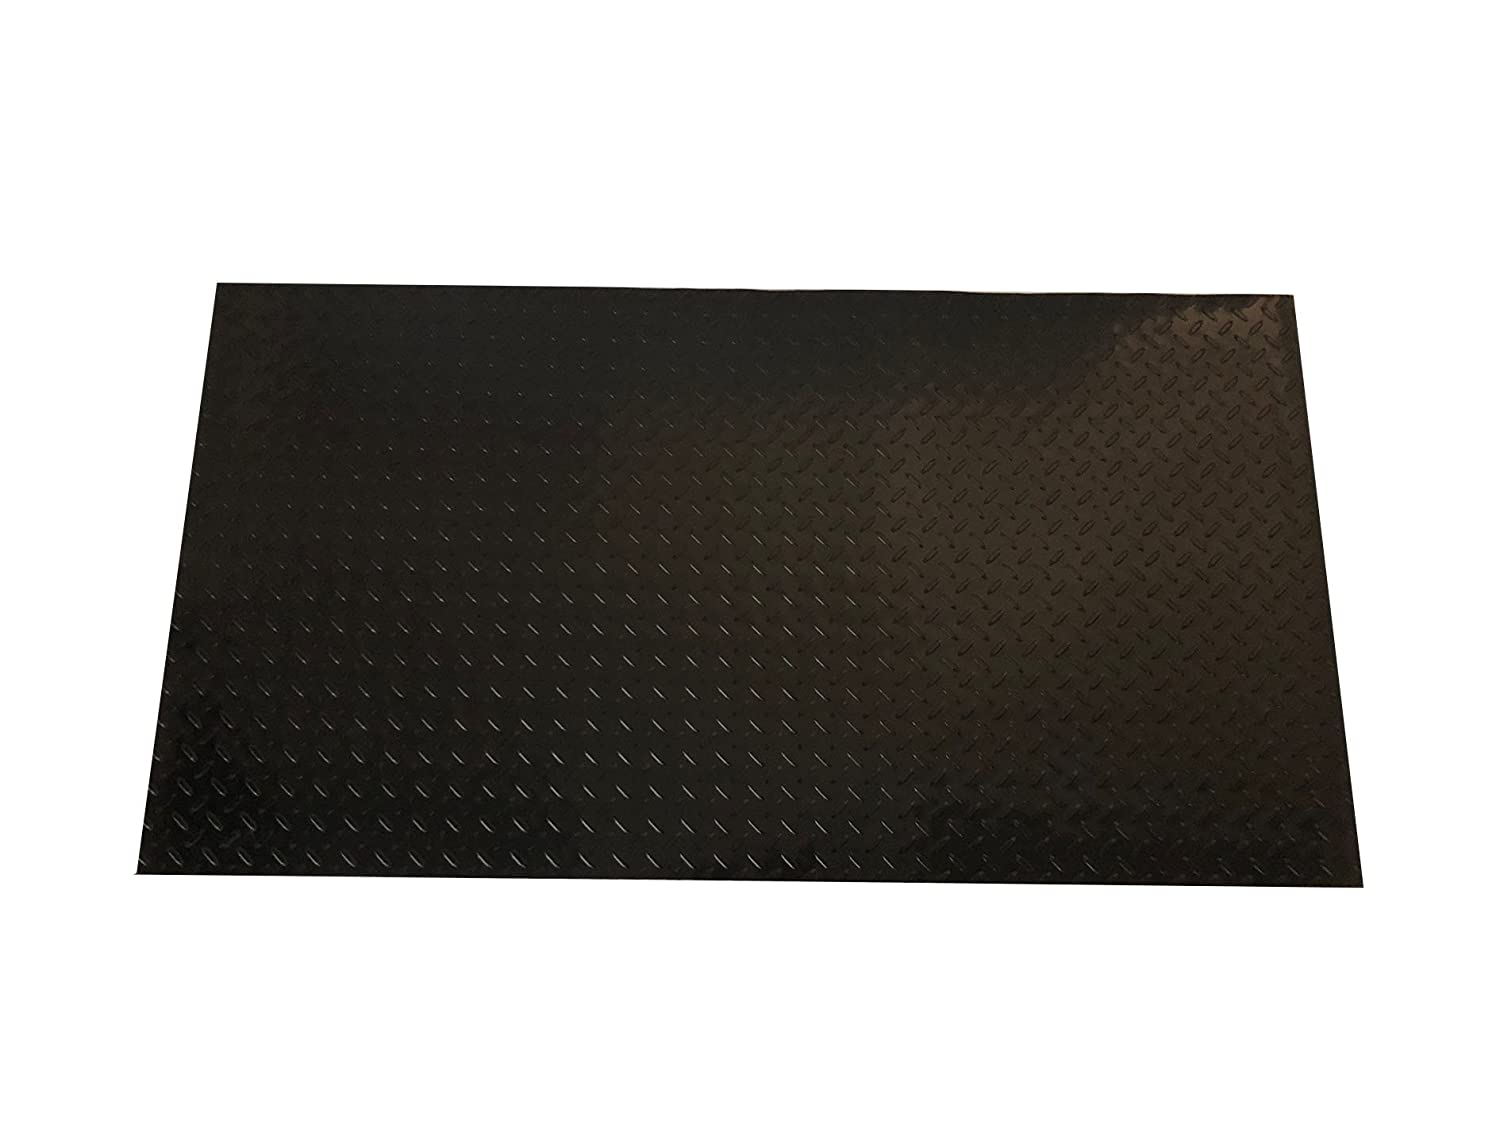 Resilia Diamond Plate Under Sink Mat, 2' x 4', Black